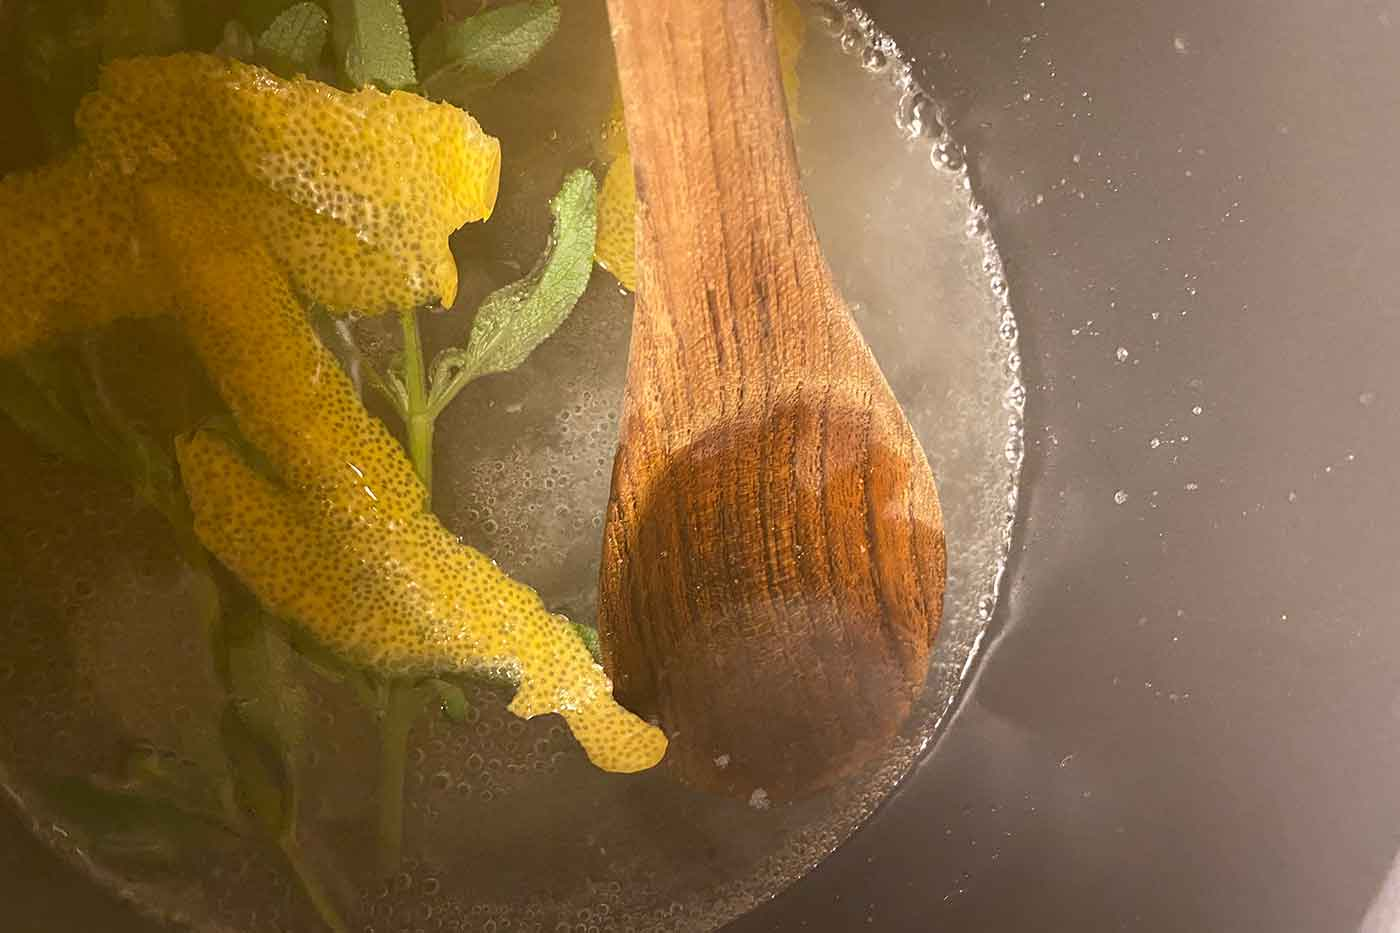 simple syrup cooking on the stove with lemon peel and sage to add to a cocktail recipe